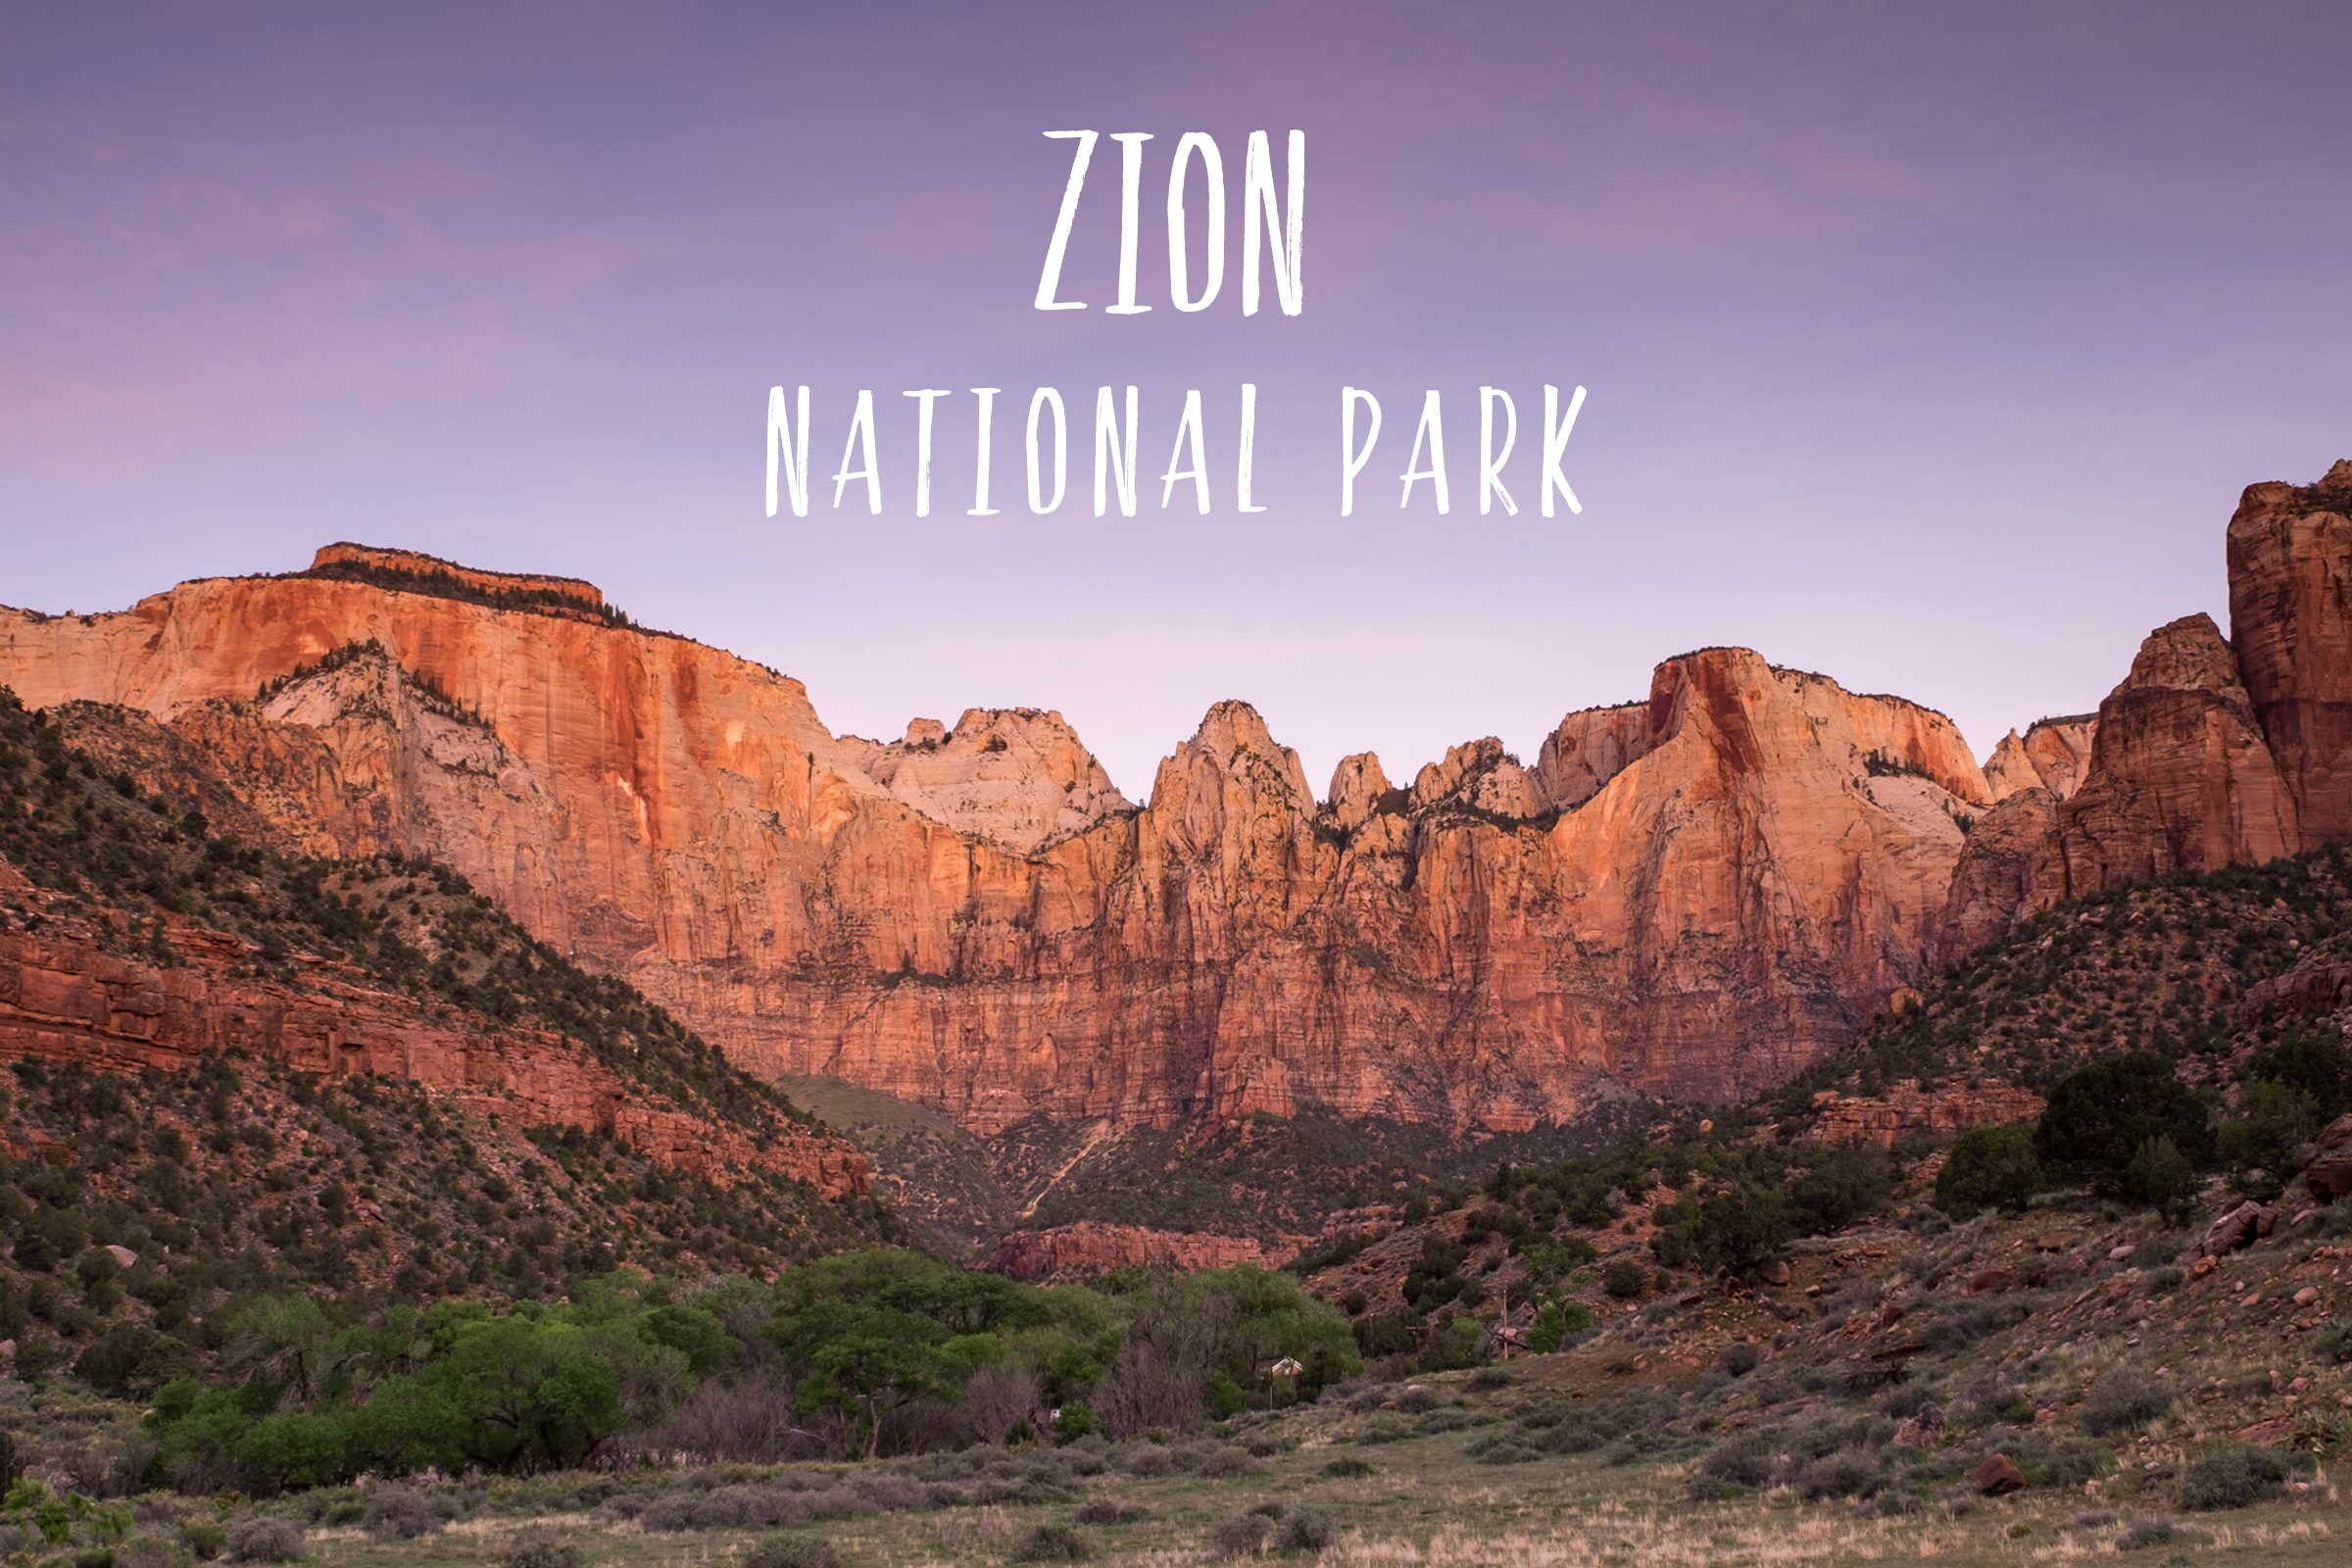 Park 19/59: Zion National Park in Utah